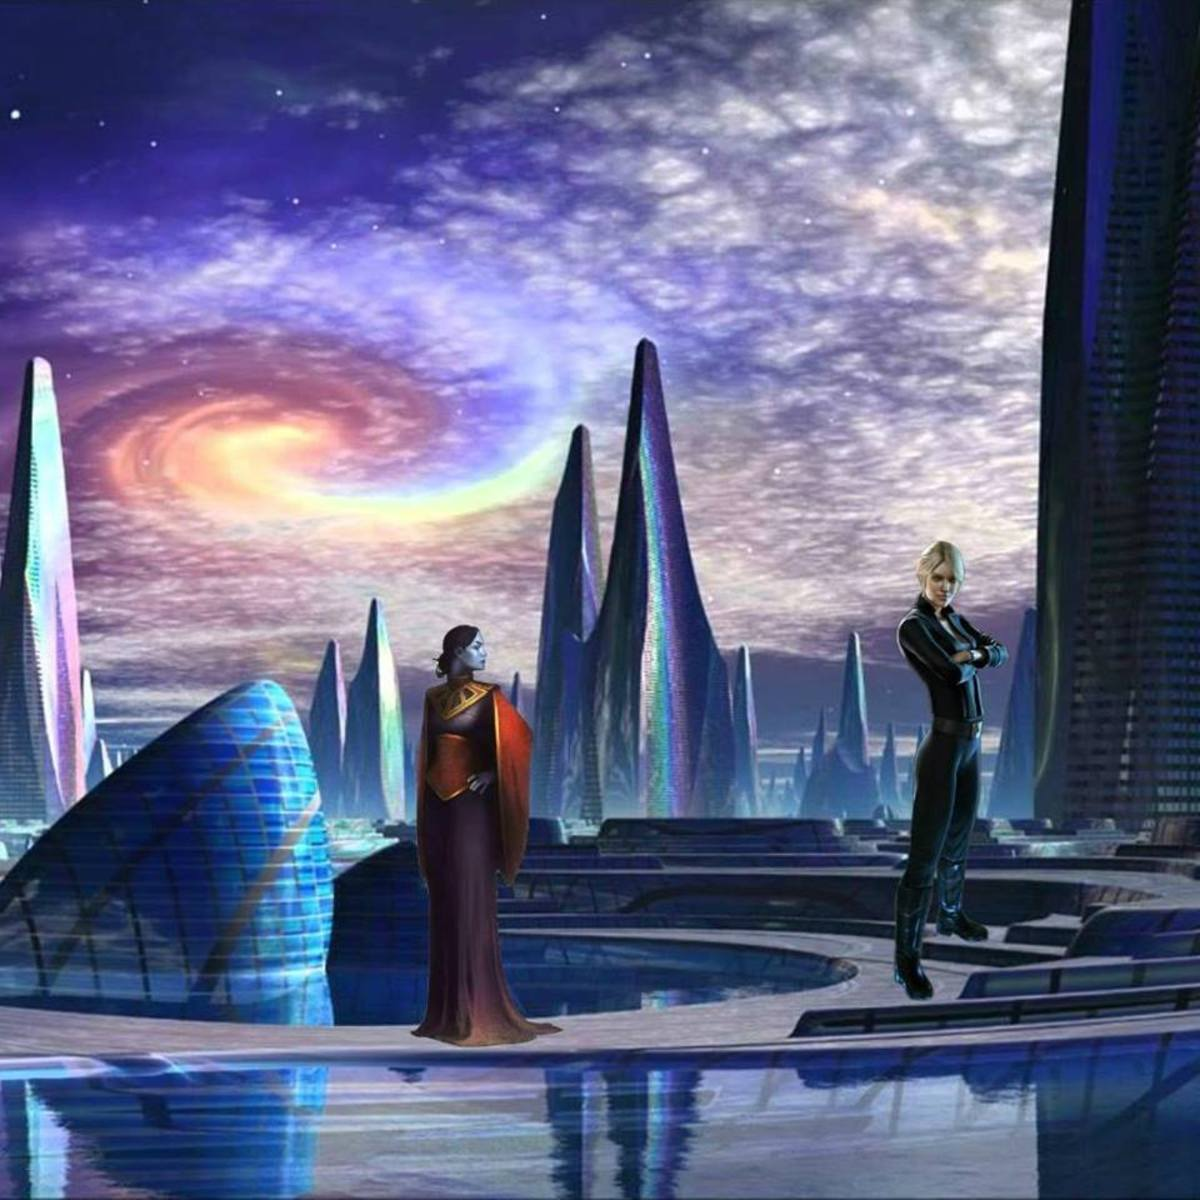 This illustration depicts an experience Ileana the Star Traveler had with one of the leaders of the El Race, descendants of the ancient Builder Race, named Anaya, in the future on Earth.